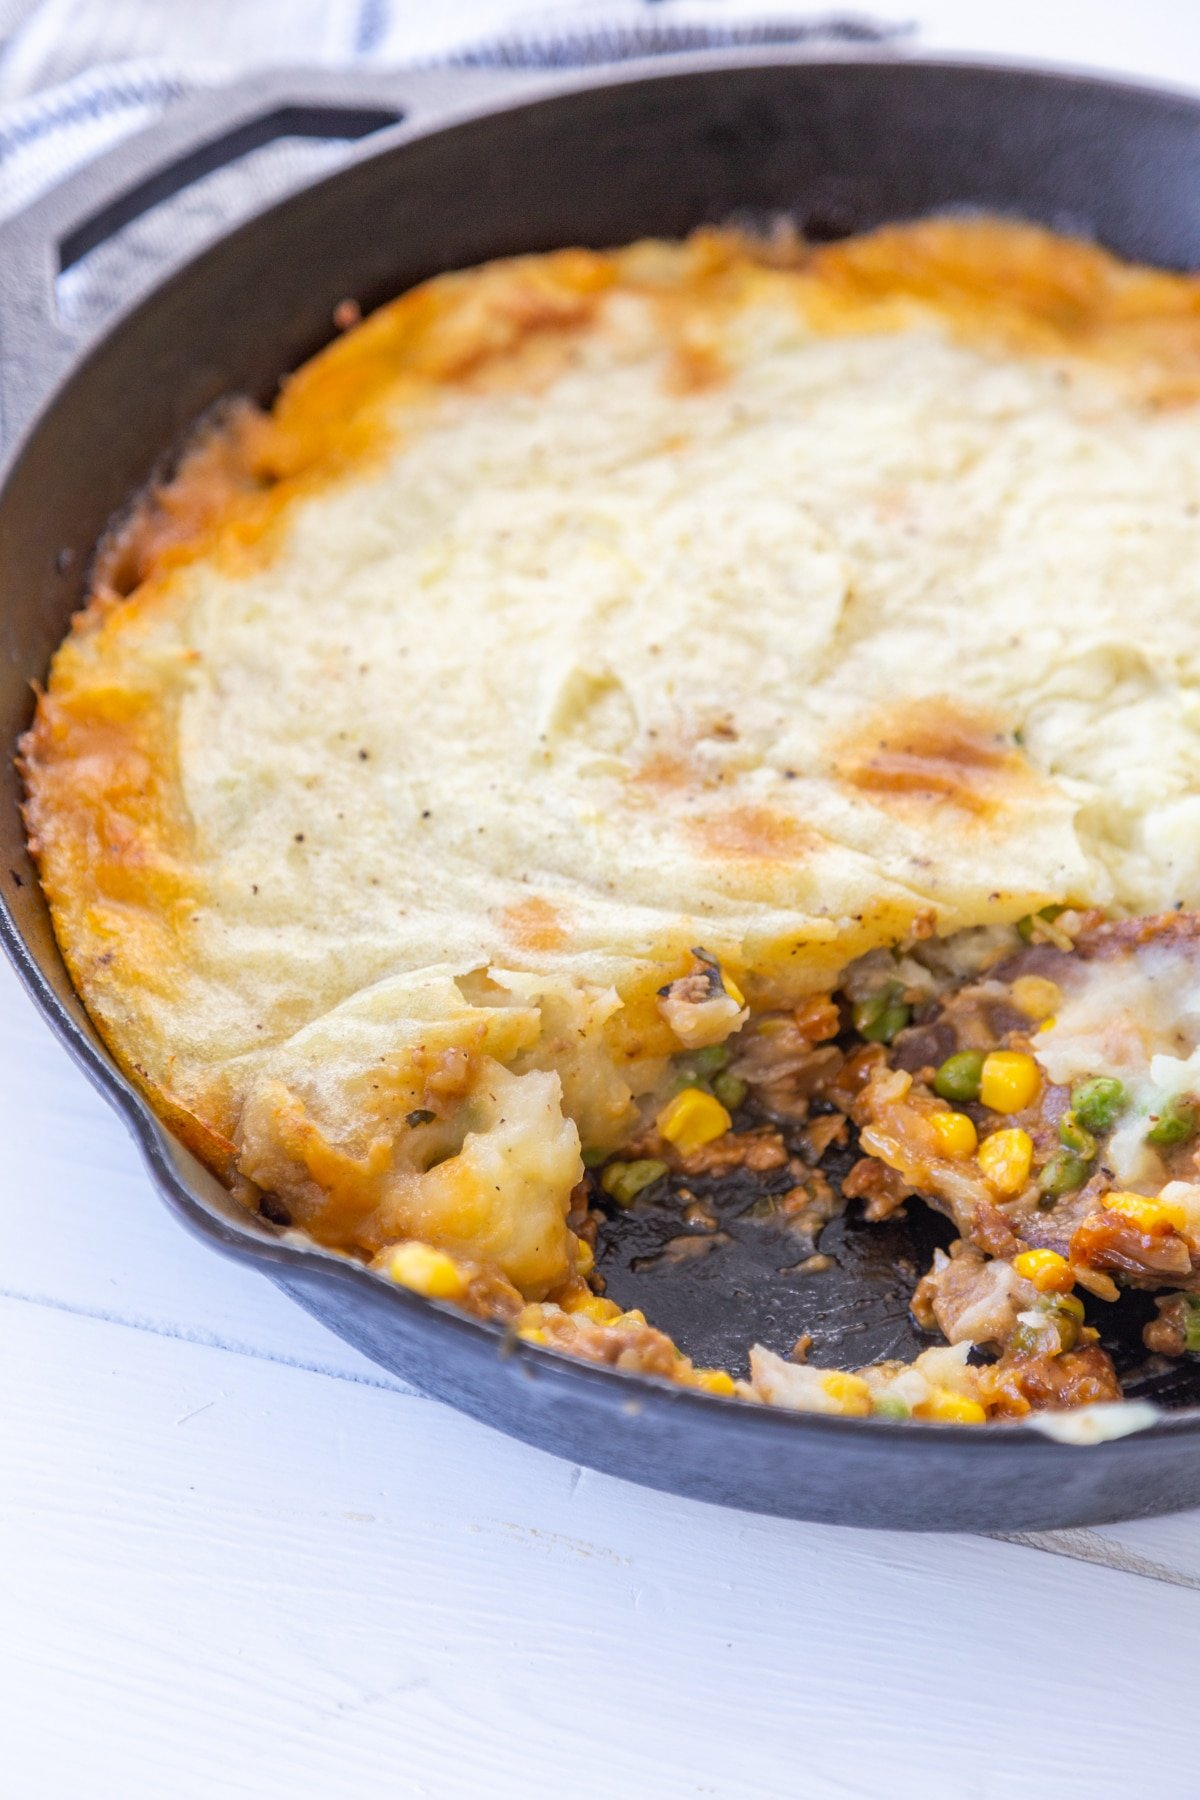 An iron skillet with a sheperd's pie and a portion removed from the pan.